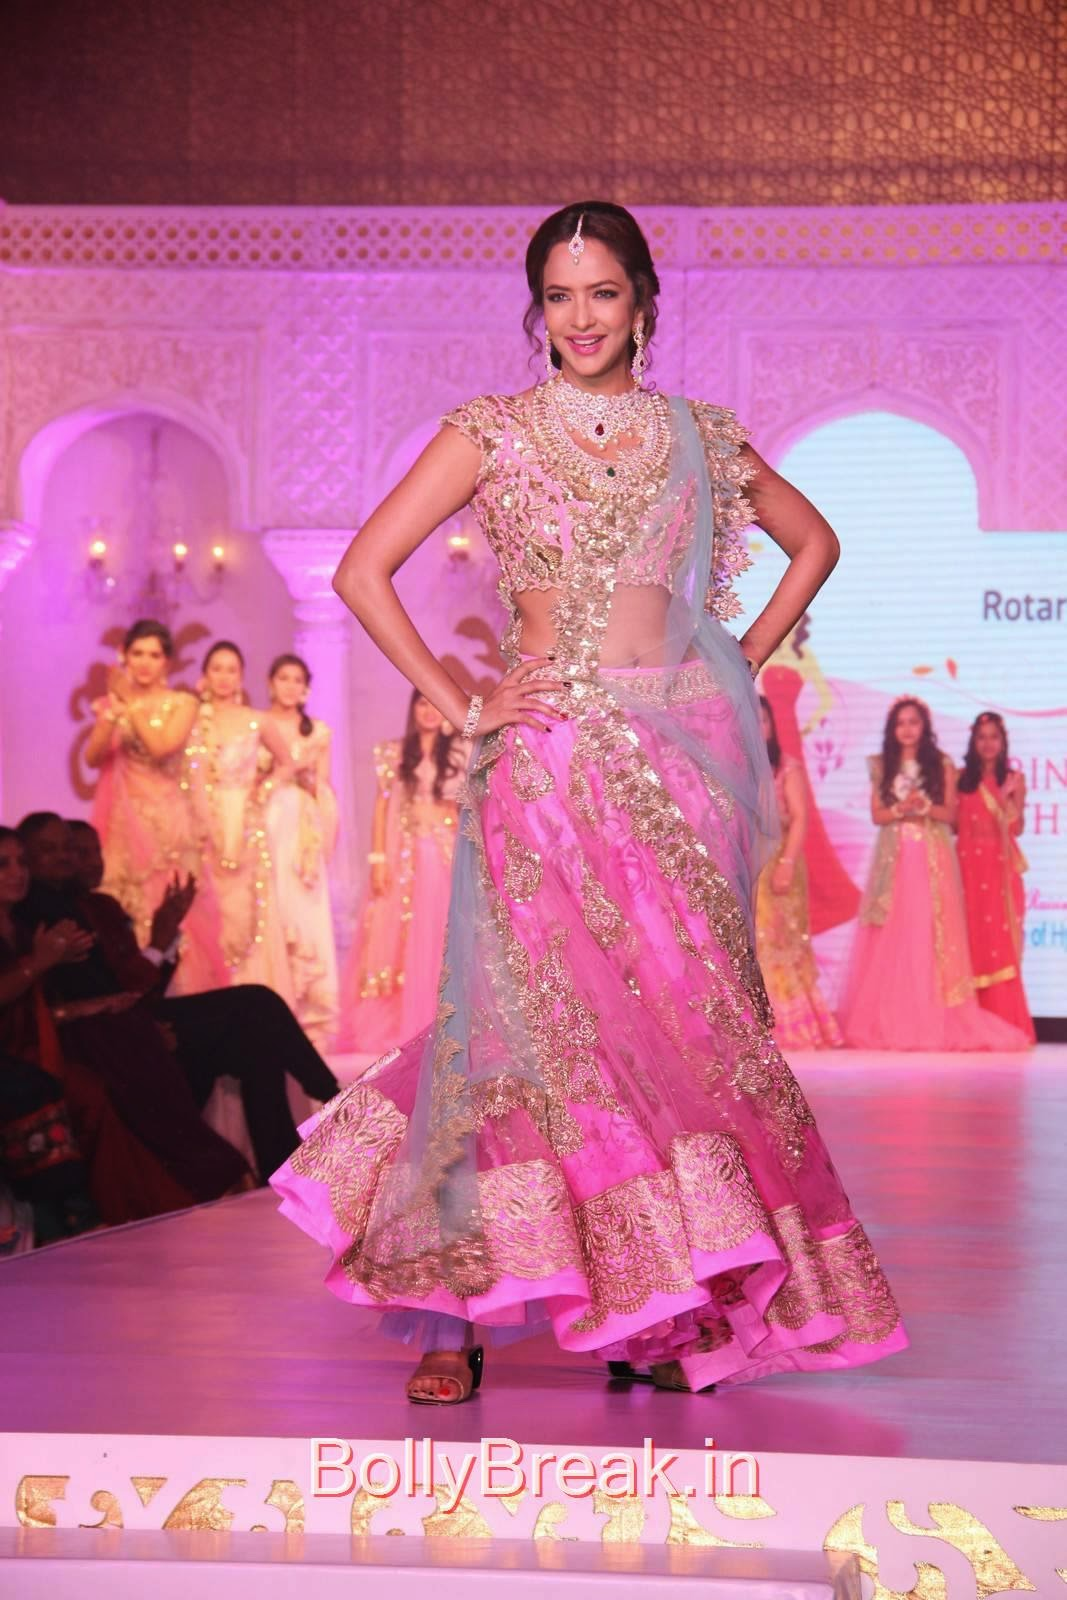 Manchu Lakshmi Photo Gallery, Manchu Lakshmi Pics in Bridal Lehenga Choli